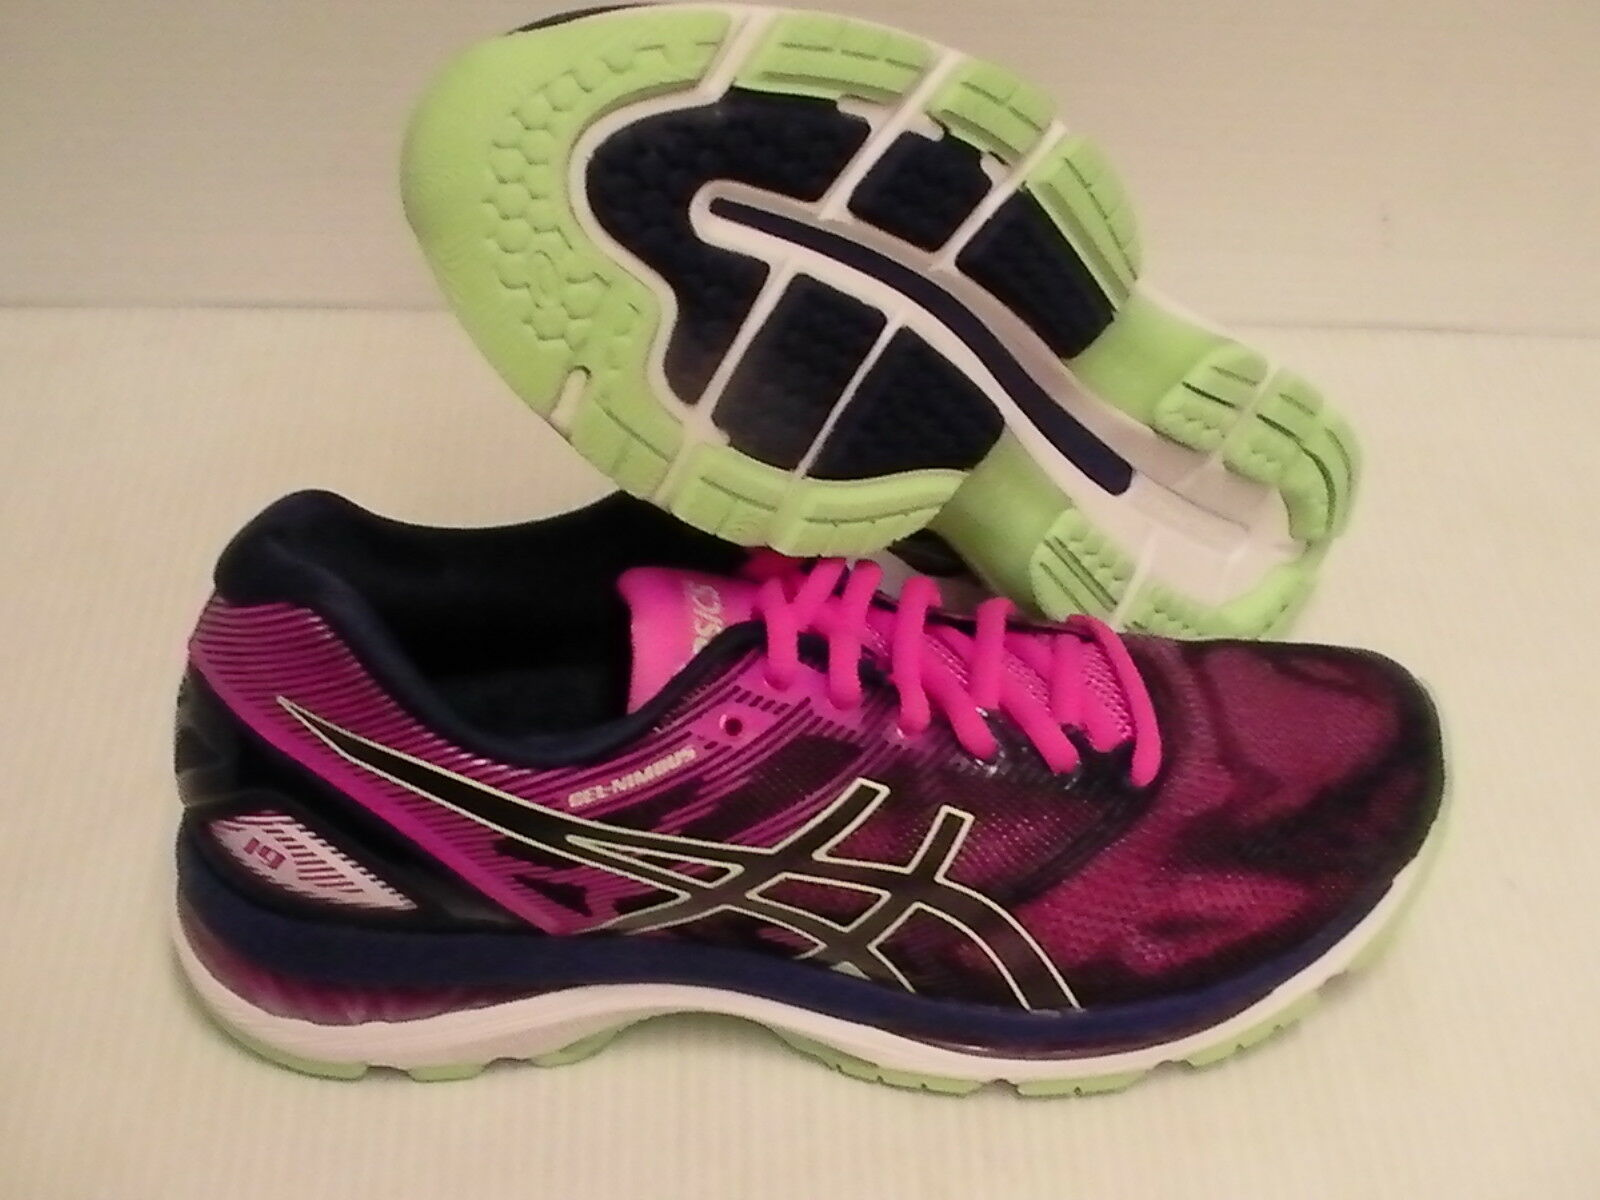 Asics women's gel nimbus 19 running shoes indigo blue paradise green size 9.5 us Brand discount